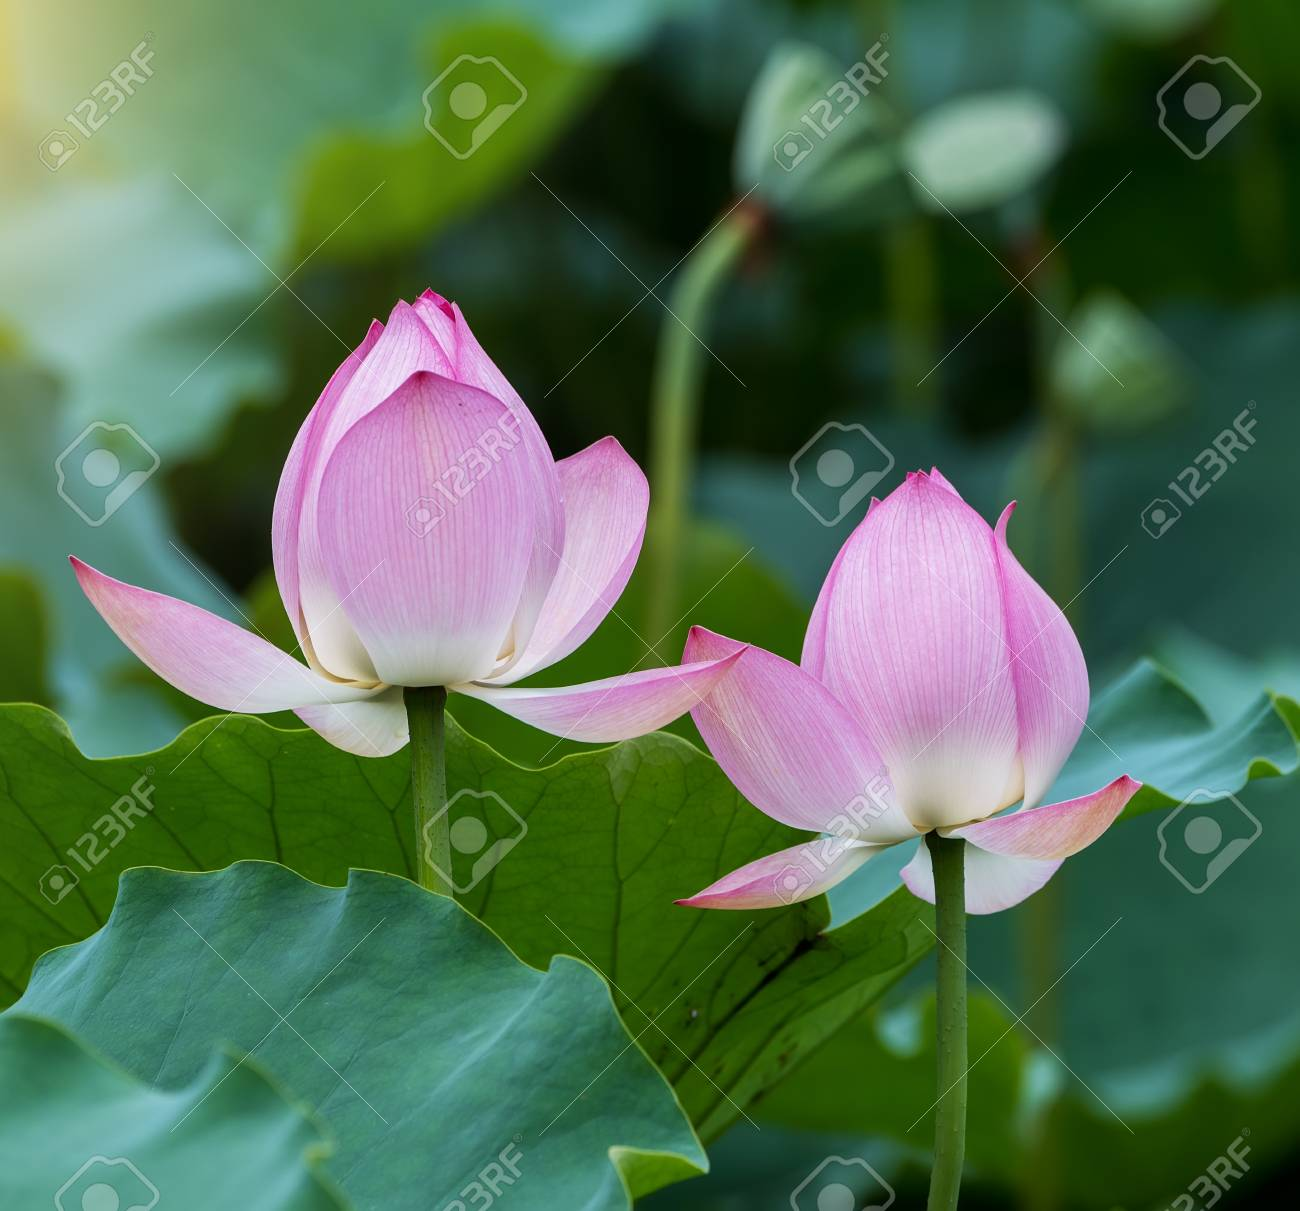 Blooming lotus flower stock photo picture and royalty free image blooming lotus flower stock photo 57733550 izmirmasajfo